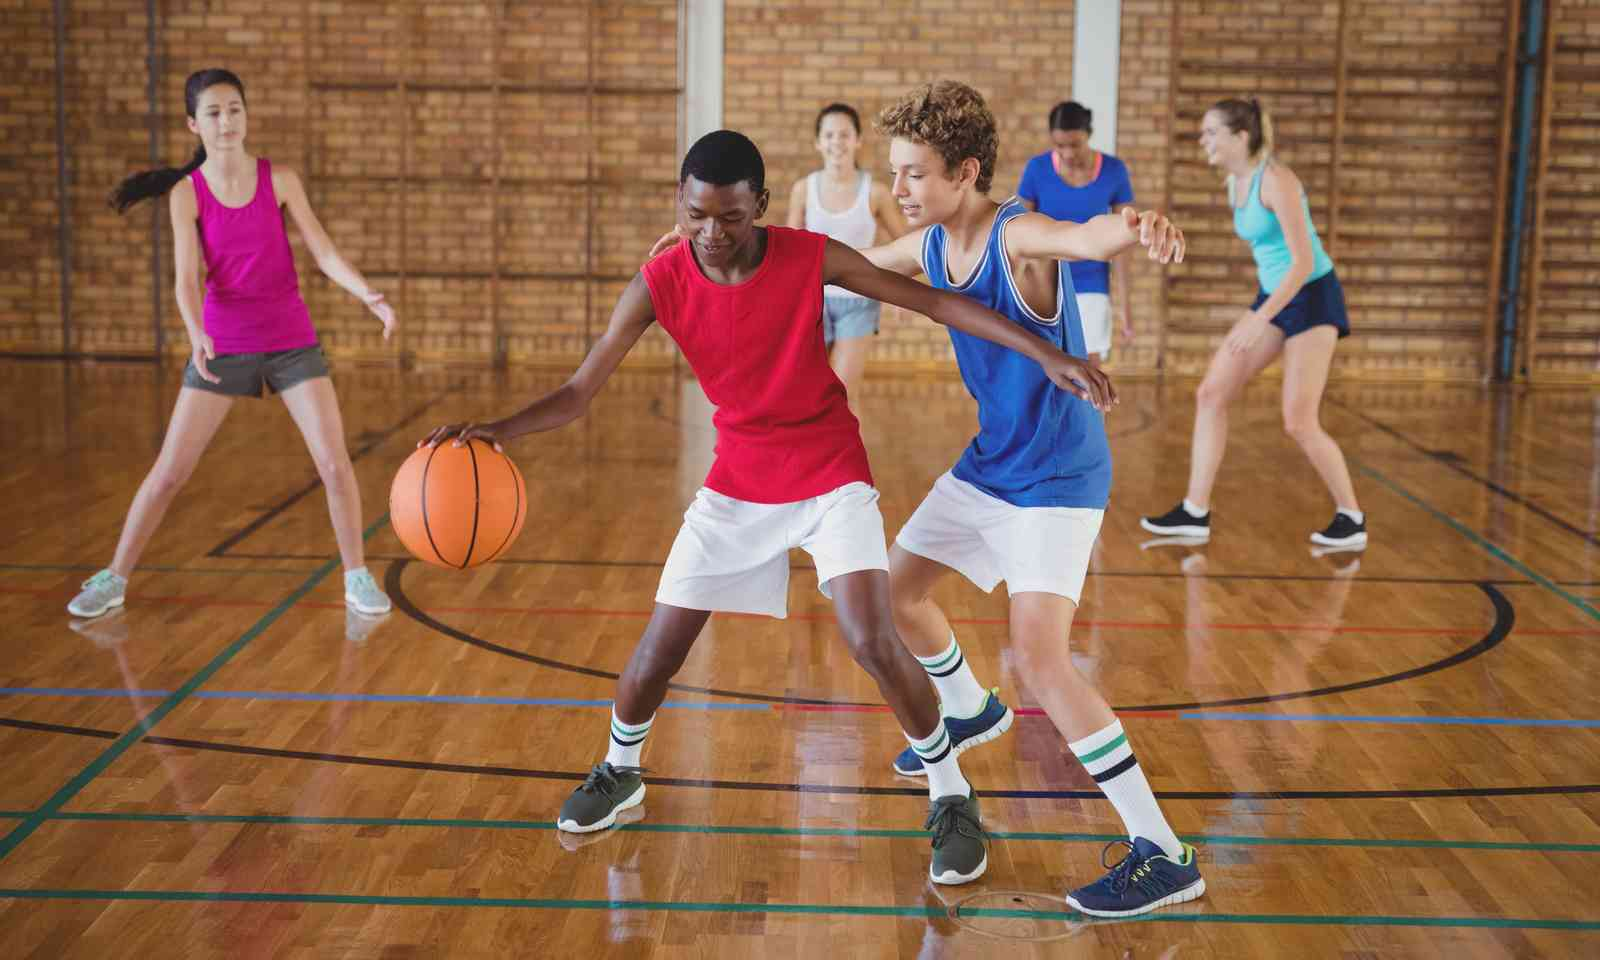 Teenagers playing basketball (Dreamstime)